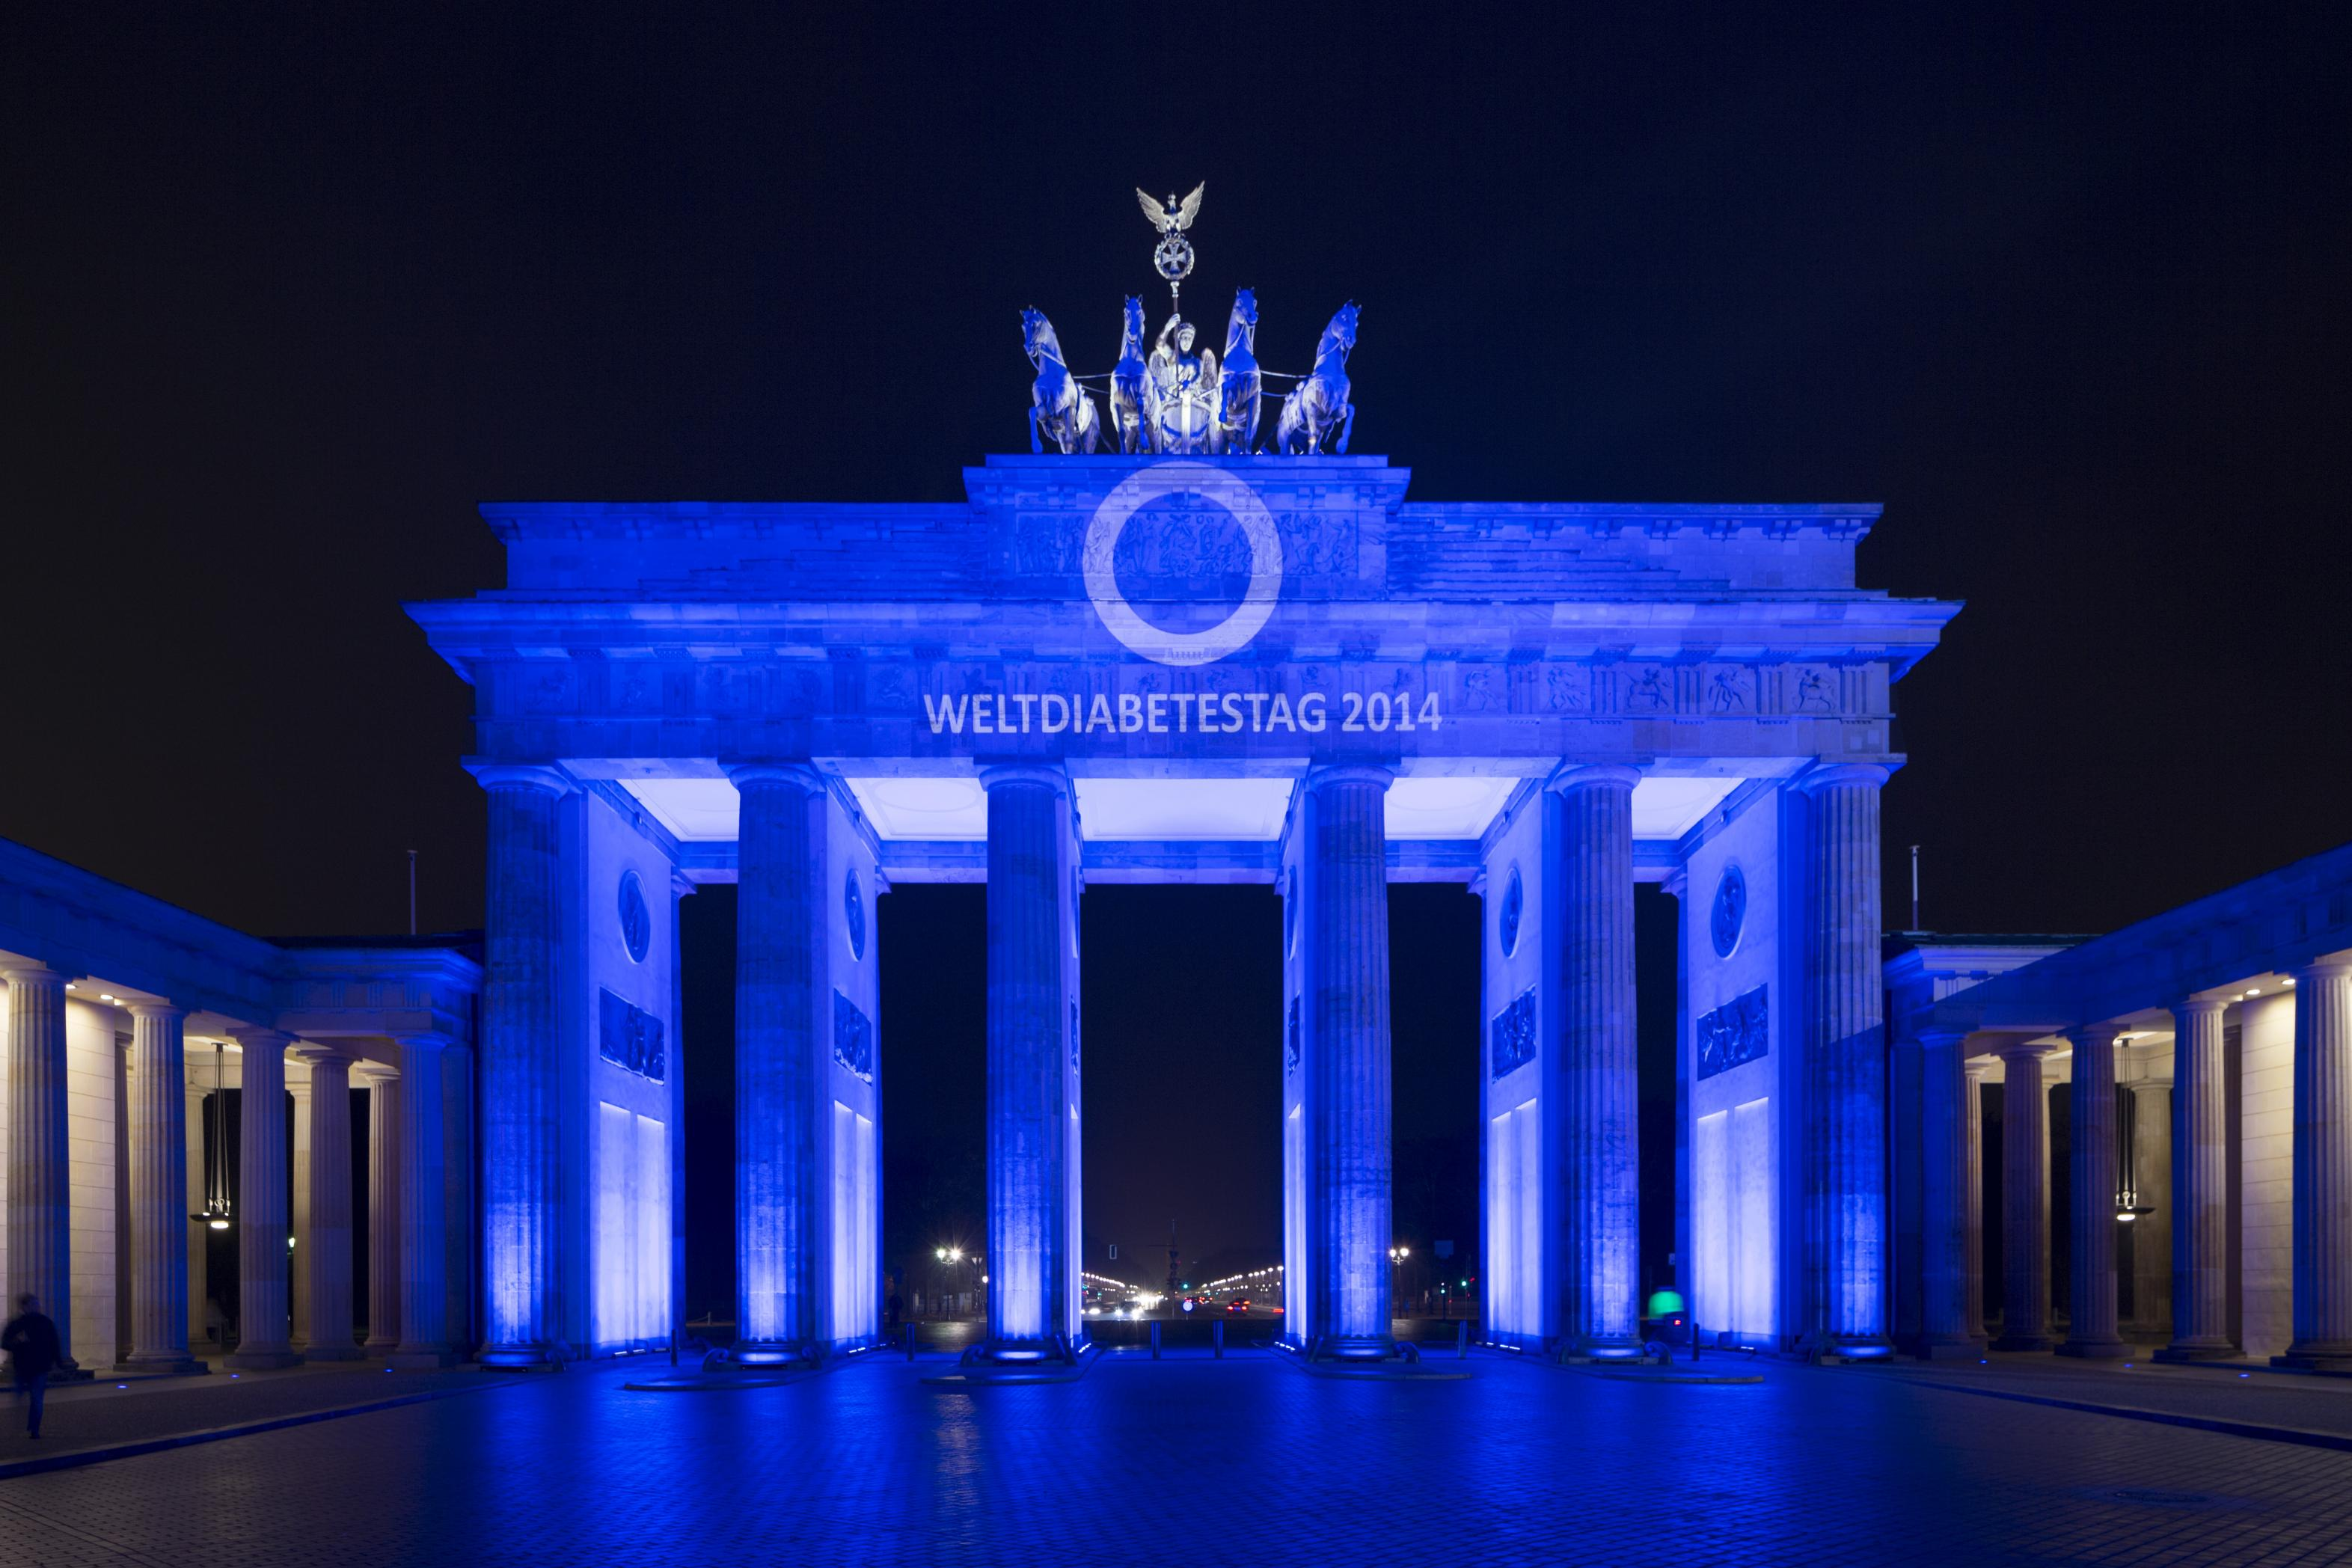 Brandenburger Tor - Weltdiabetestag 2014 (frontal)